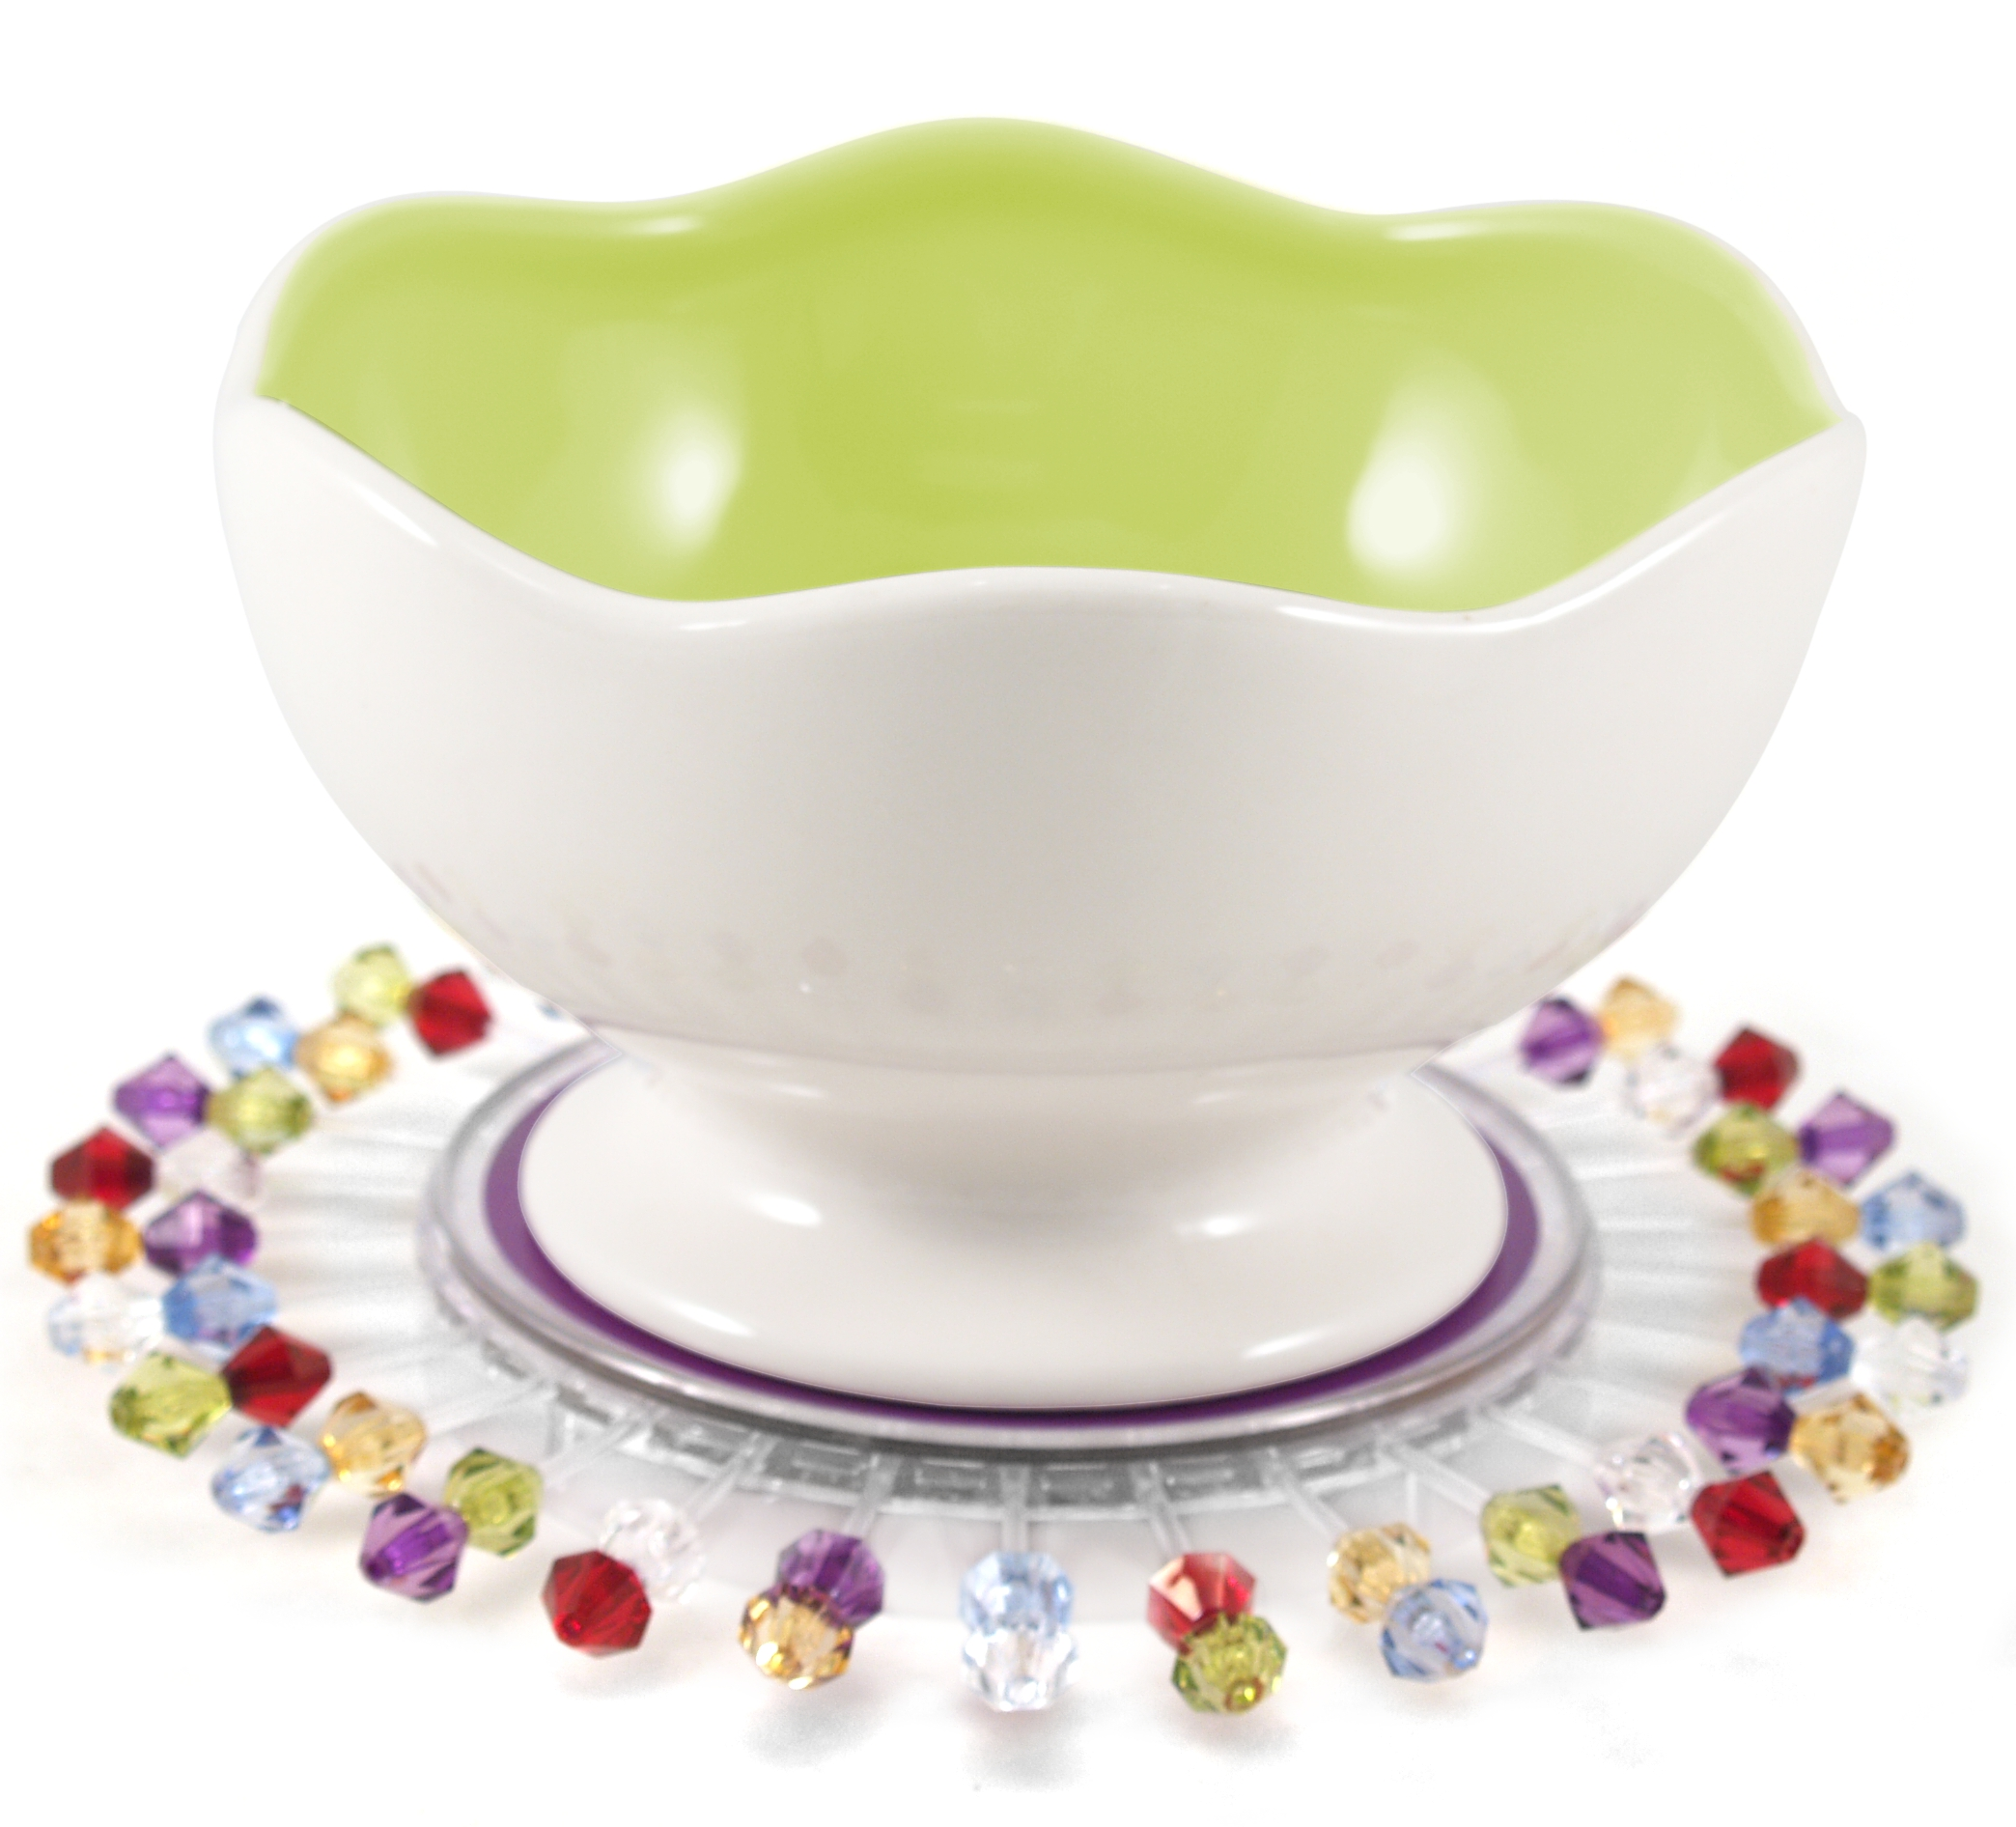 Talisman Classic Dark Entertaining Kit w/ Ceramic Bowl